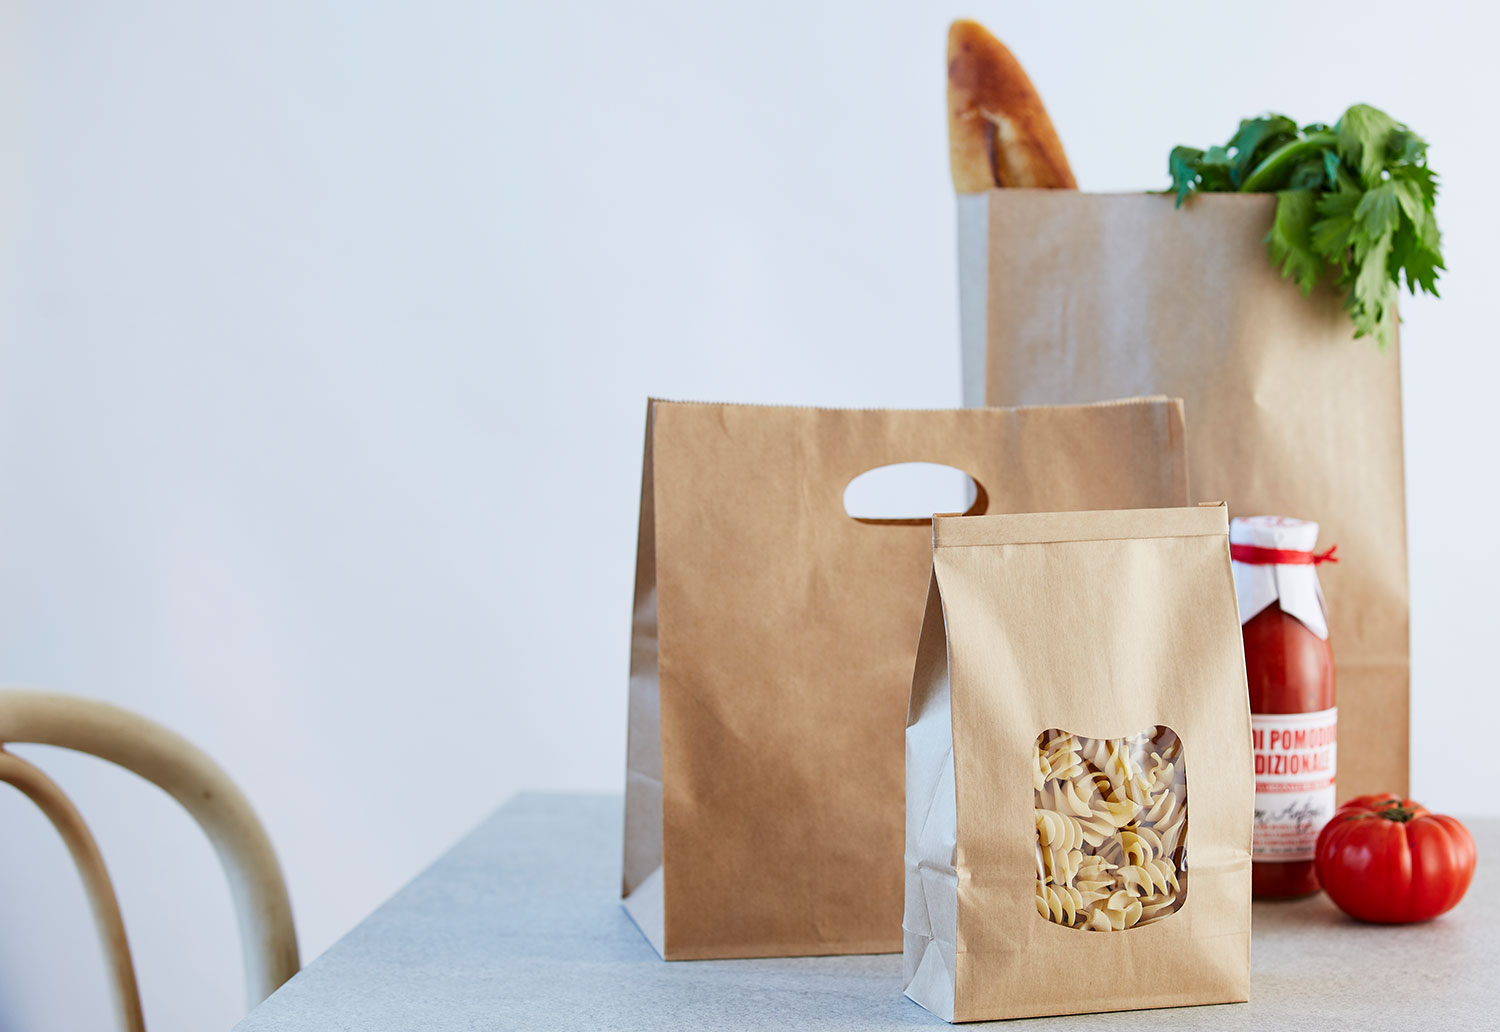 Pasta packed in a recyclable paper bag